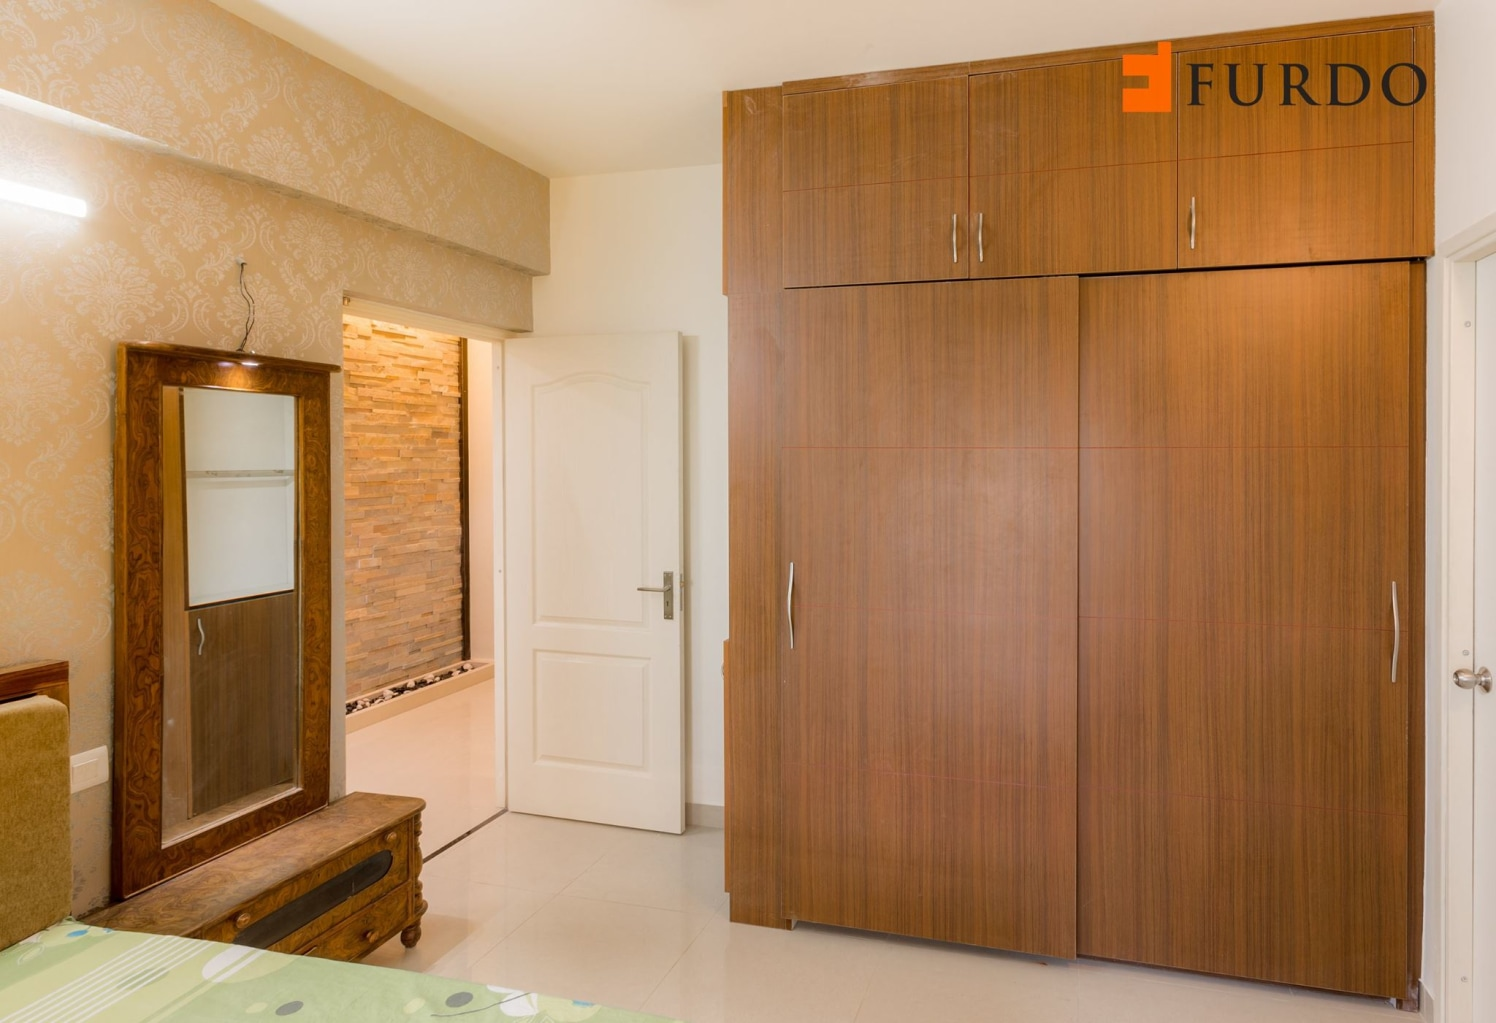 Bedroom With Wooden Wardrobe  and marble  flooring by Furdo.com Bedroom Modern | Interior Design Photos & Ideas